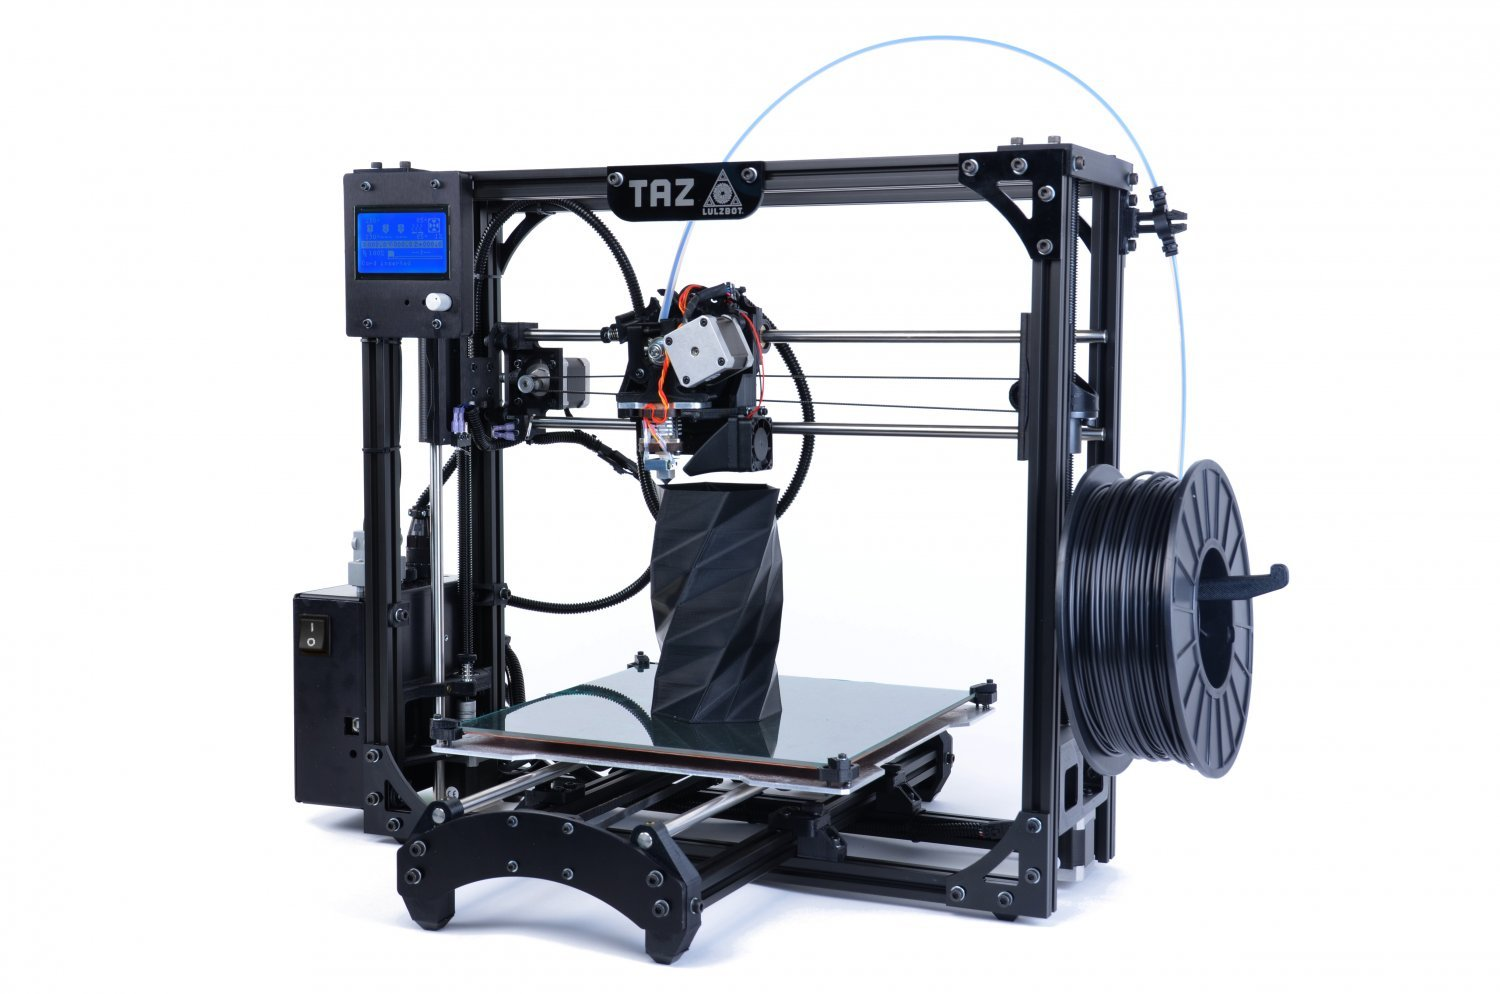 lulzbot taz 4 3d printer reviews